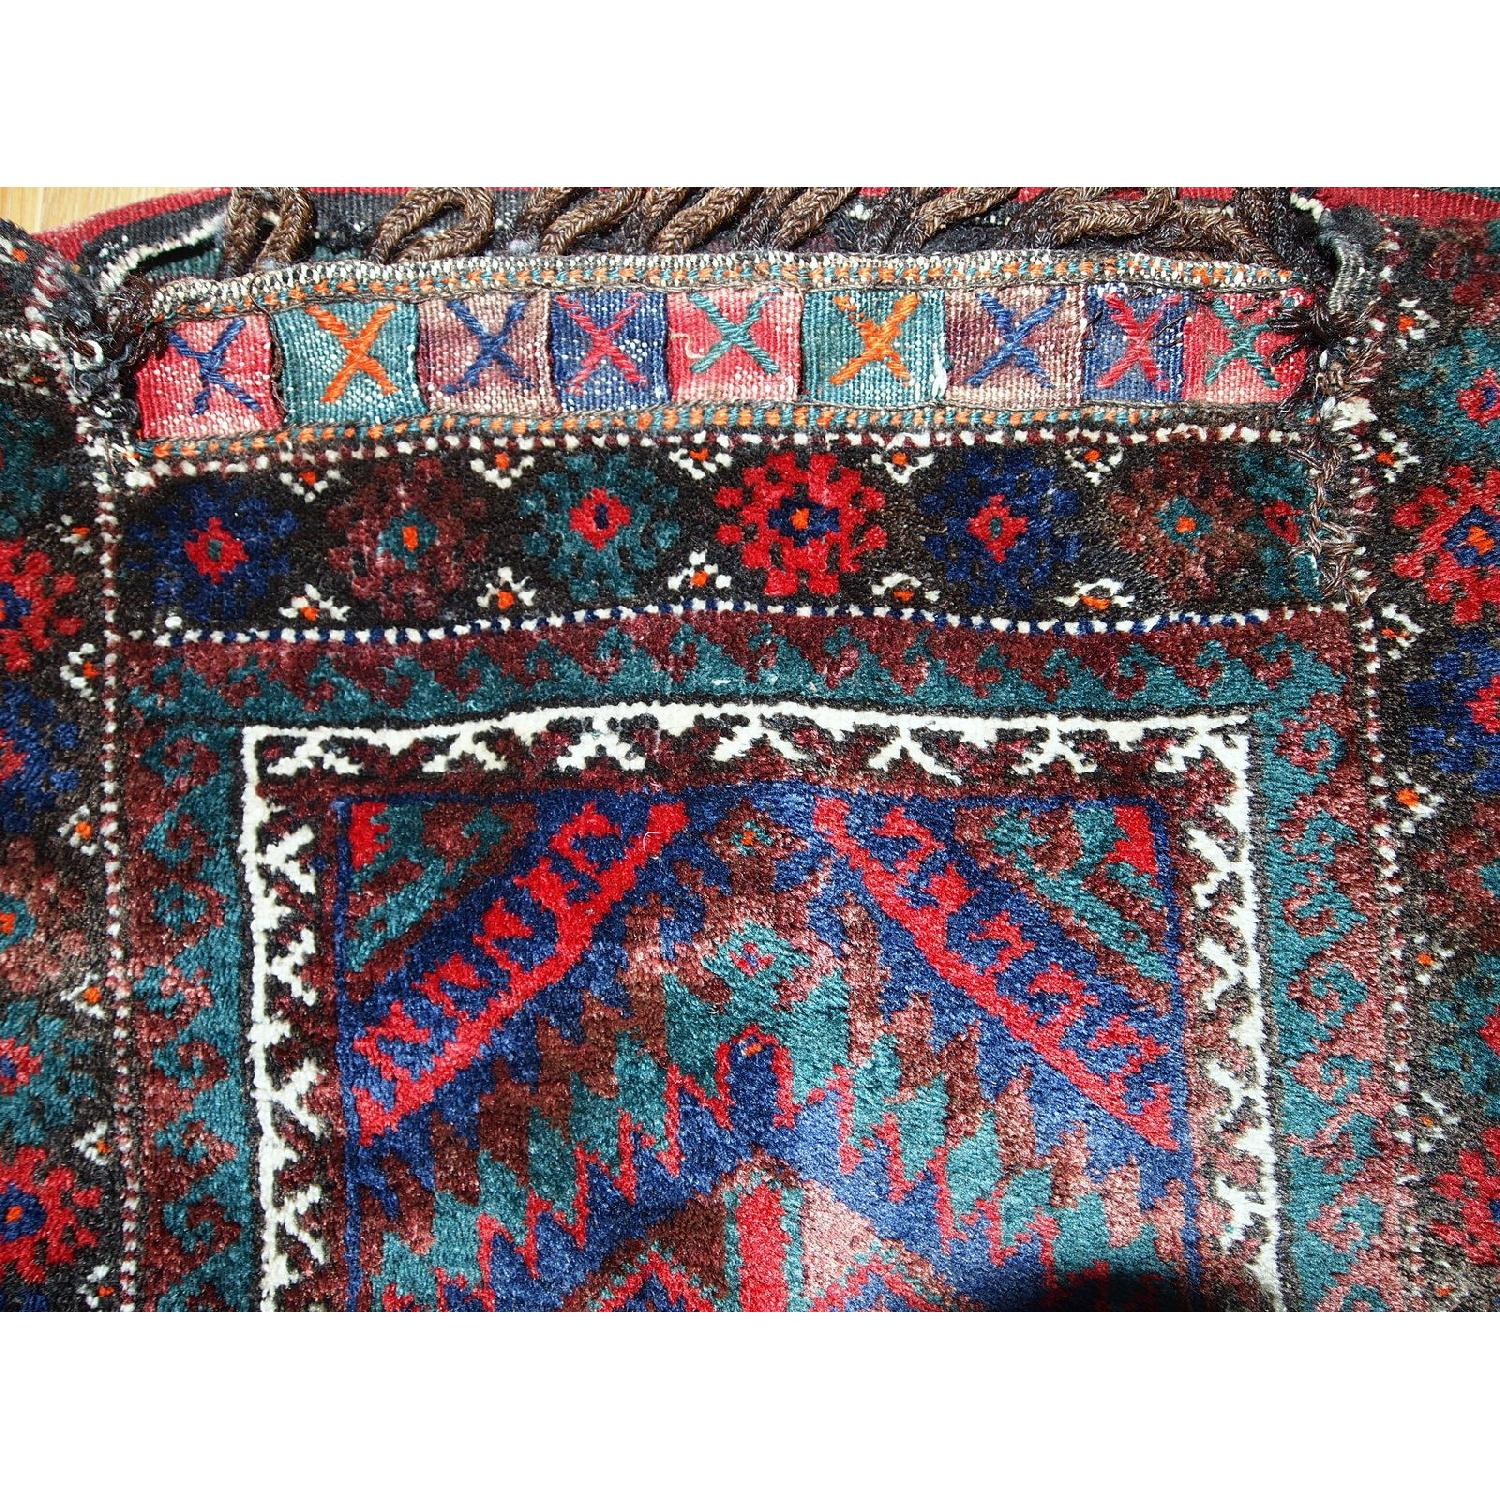 Antique Handmade Persian Kurdish Salt Bag Rug - image-11